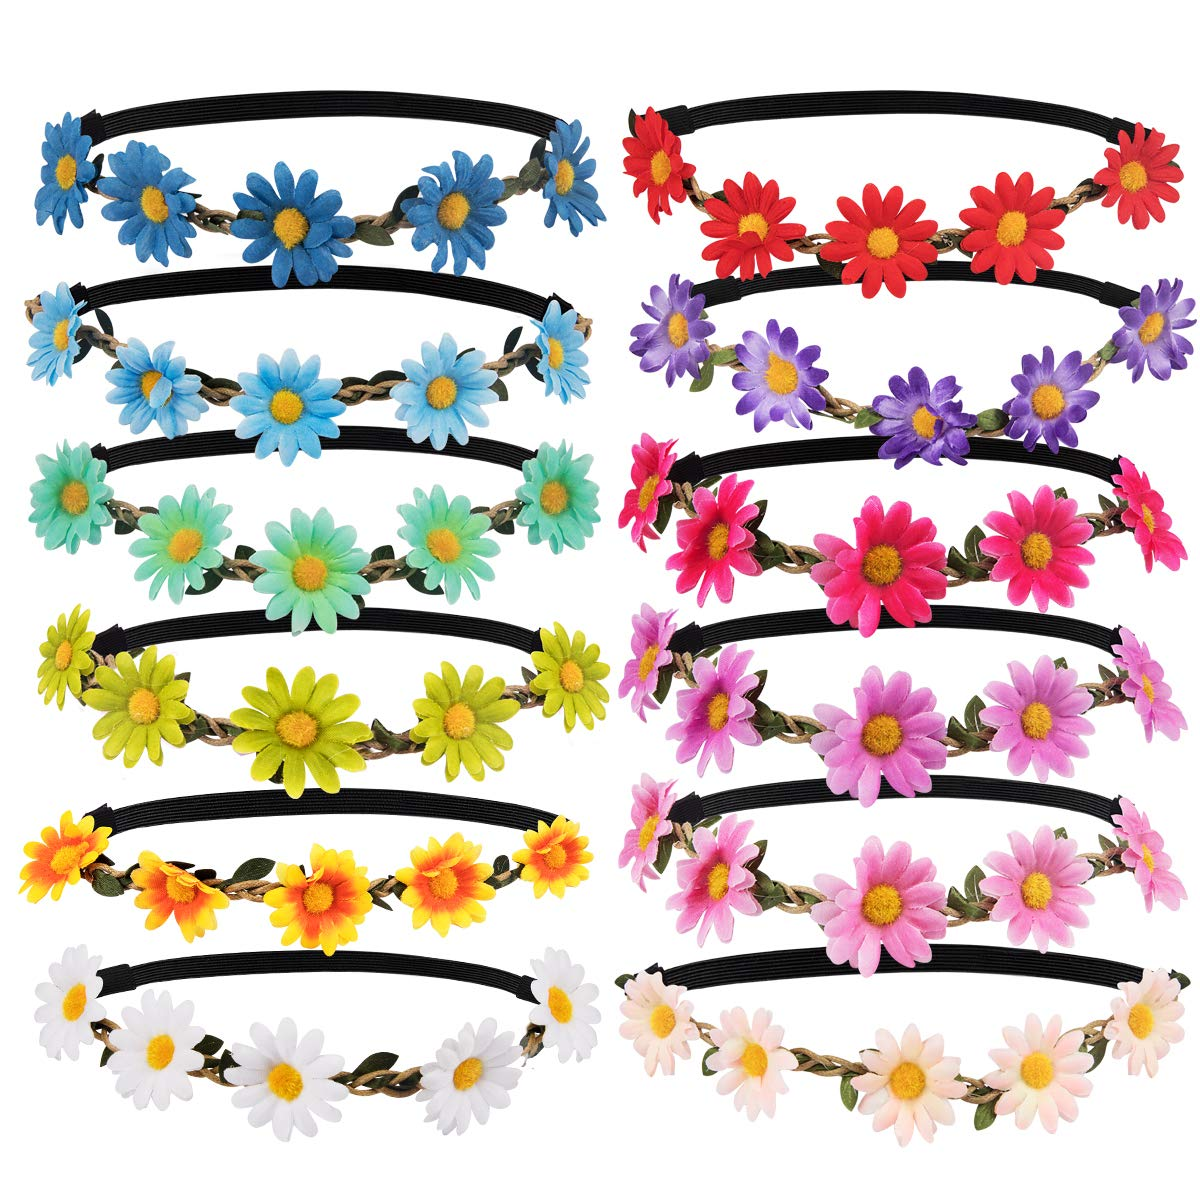 ANBALA Multicolor Daisy Flower Headband 12 Pieces Crown Floral Garland Headbands for Girls for Festival Wedding Party